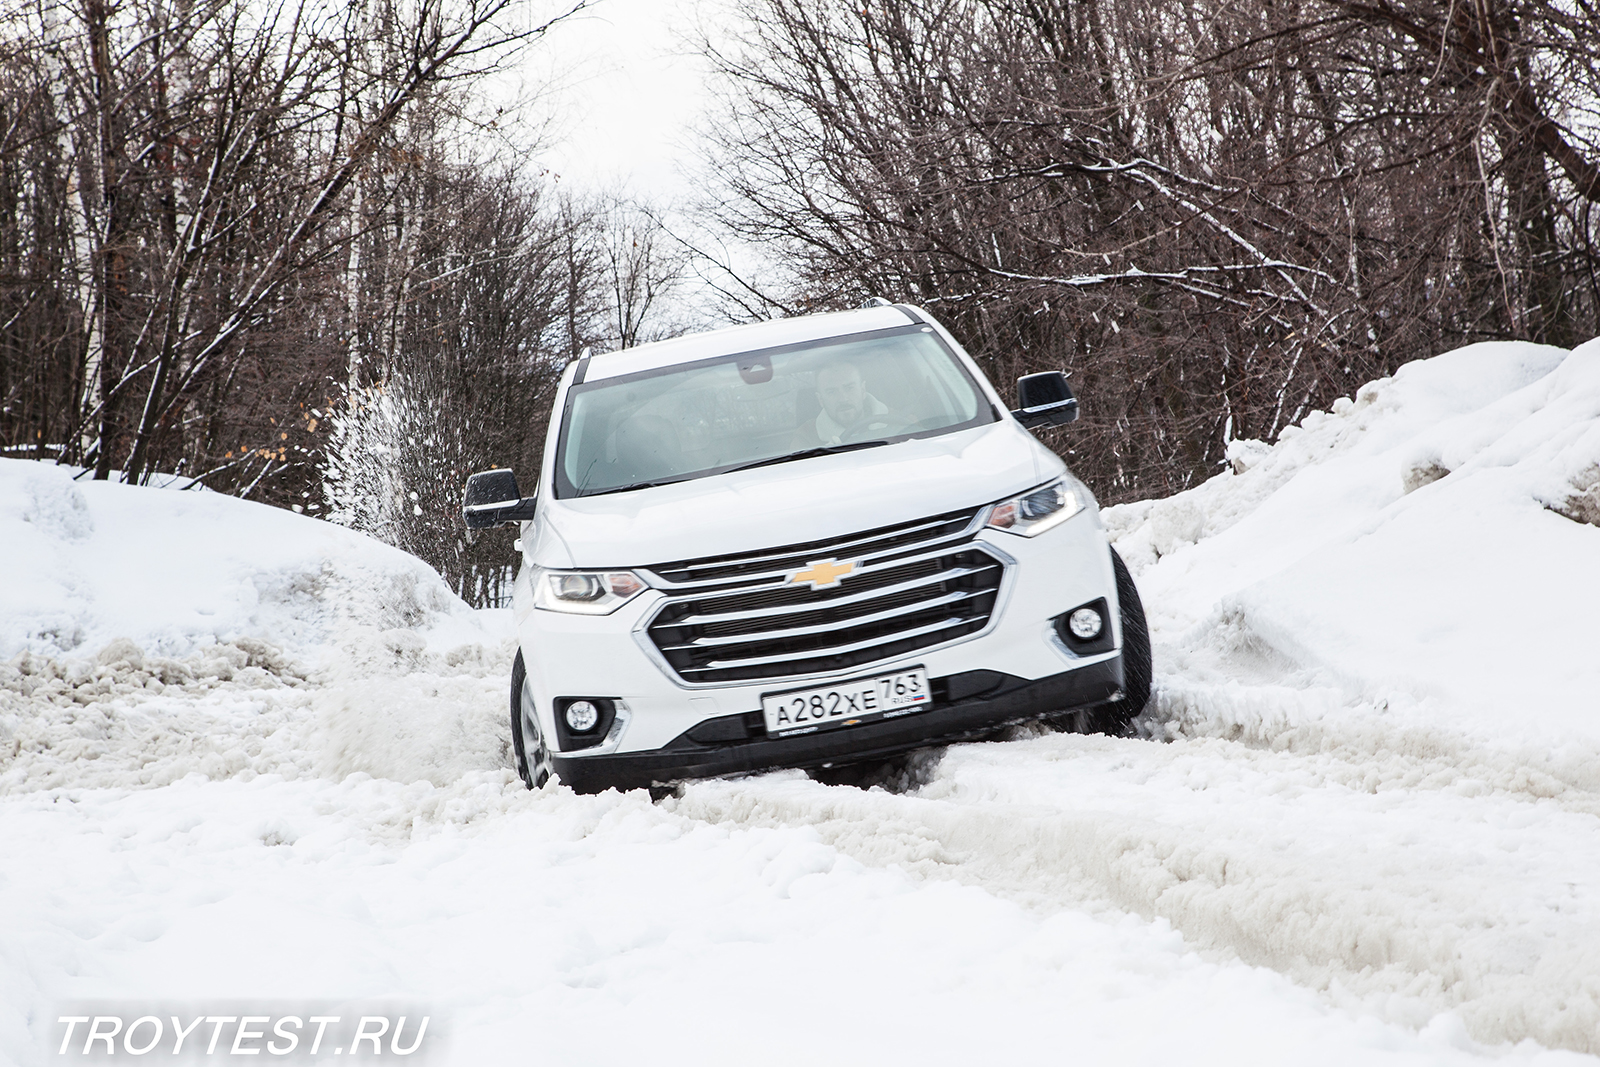 chevrolet, traverse, troytest, andrey troy, review, chevy, suv, crossover, usa